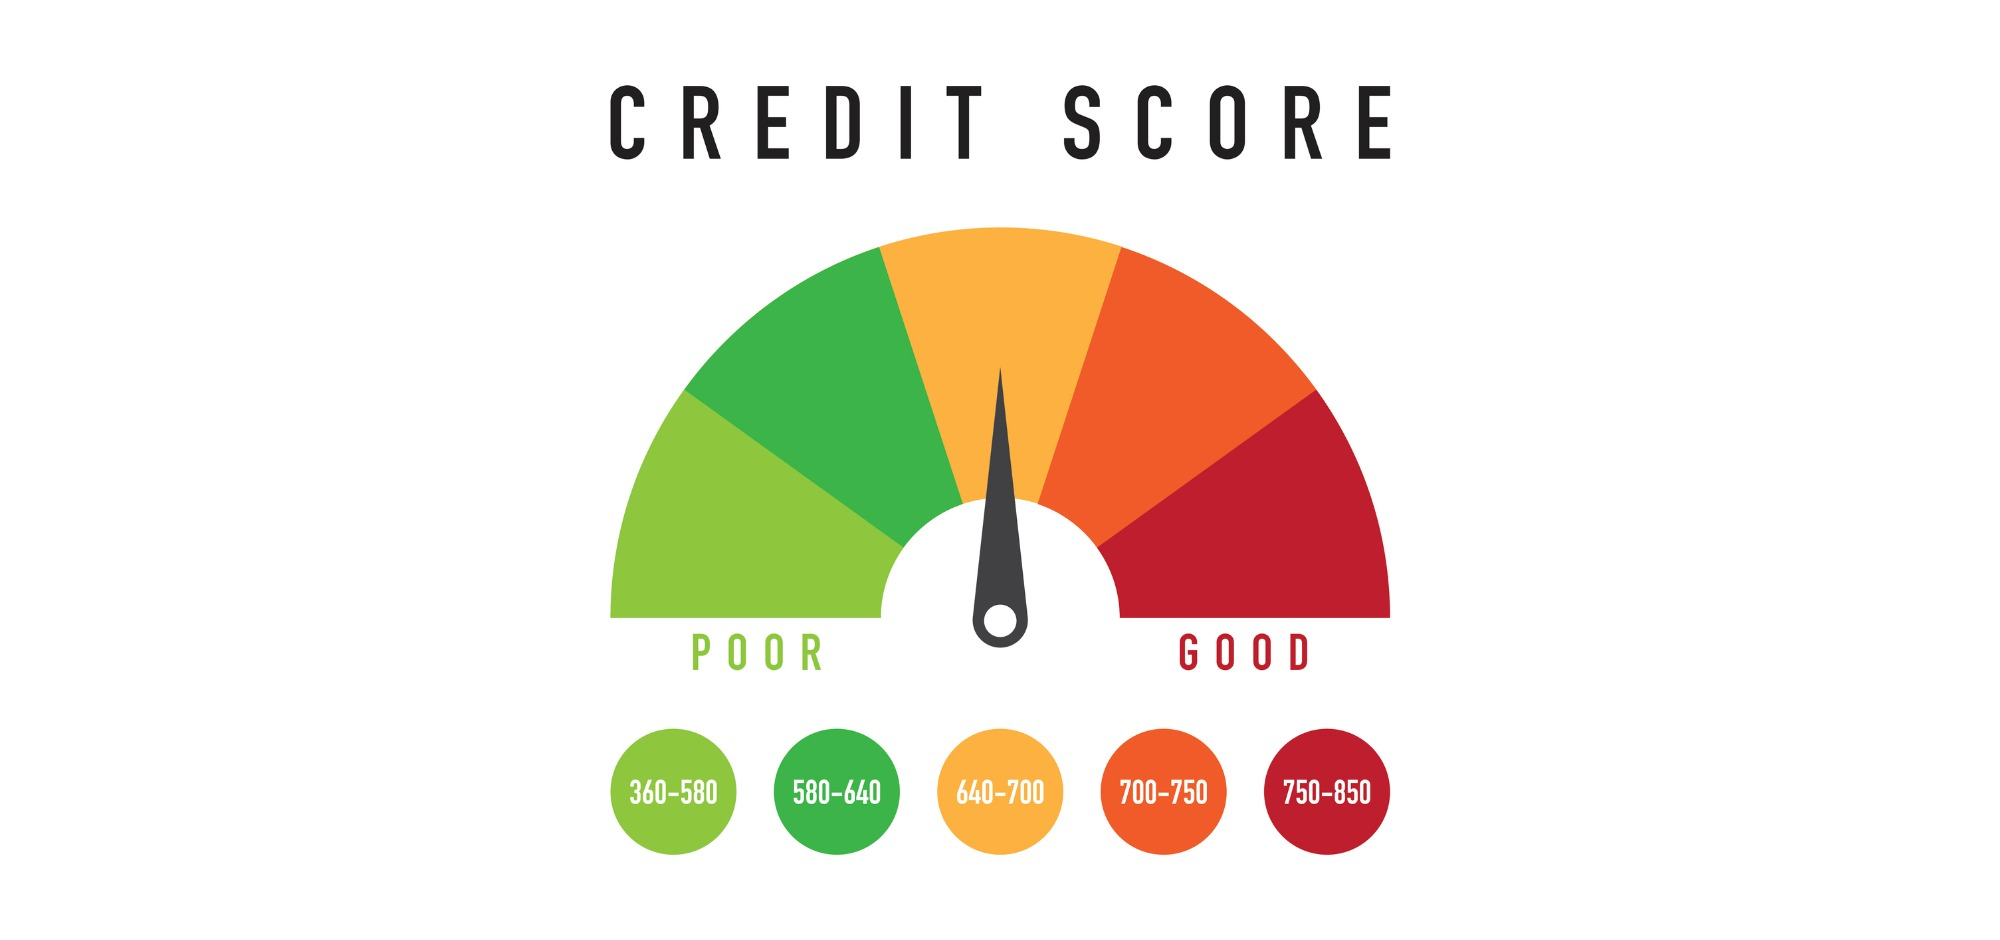 5 great ways to fix your credit score fast